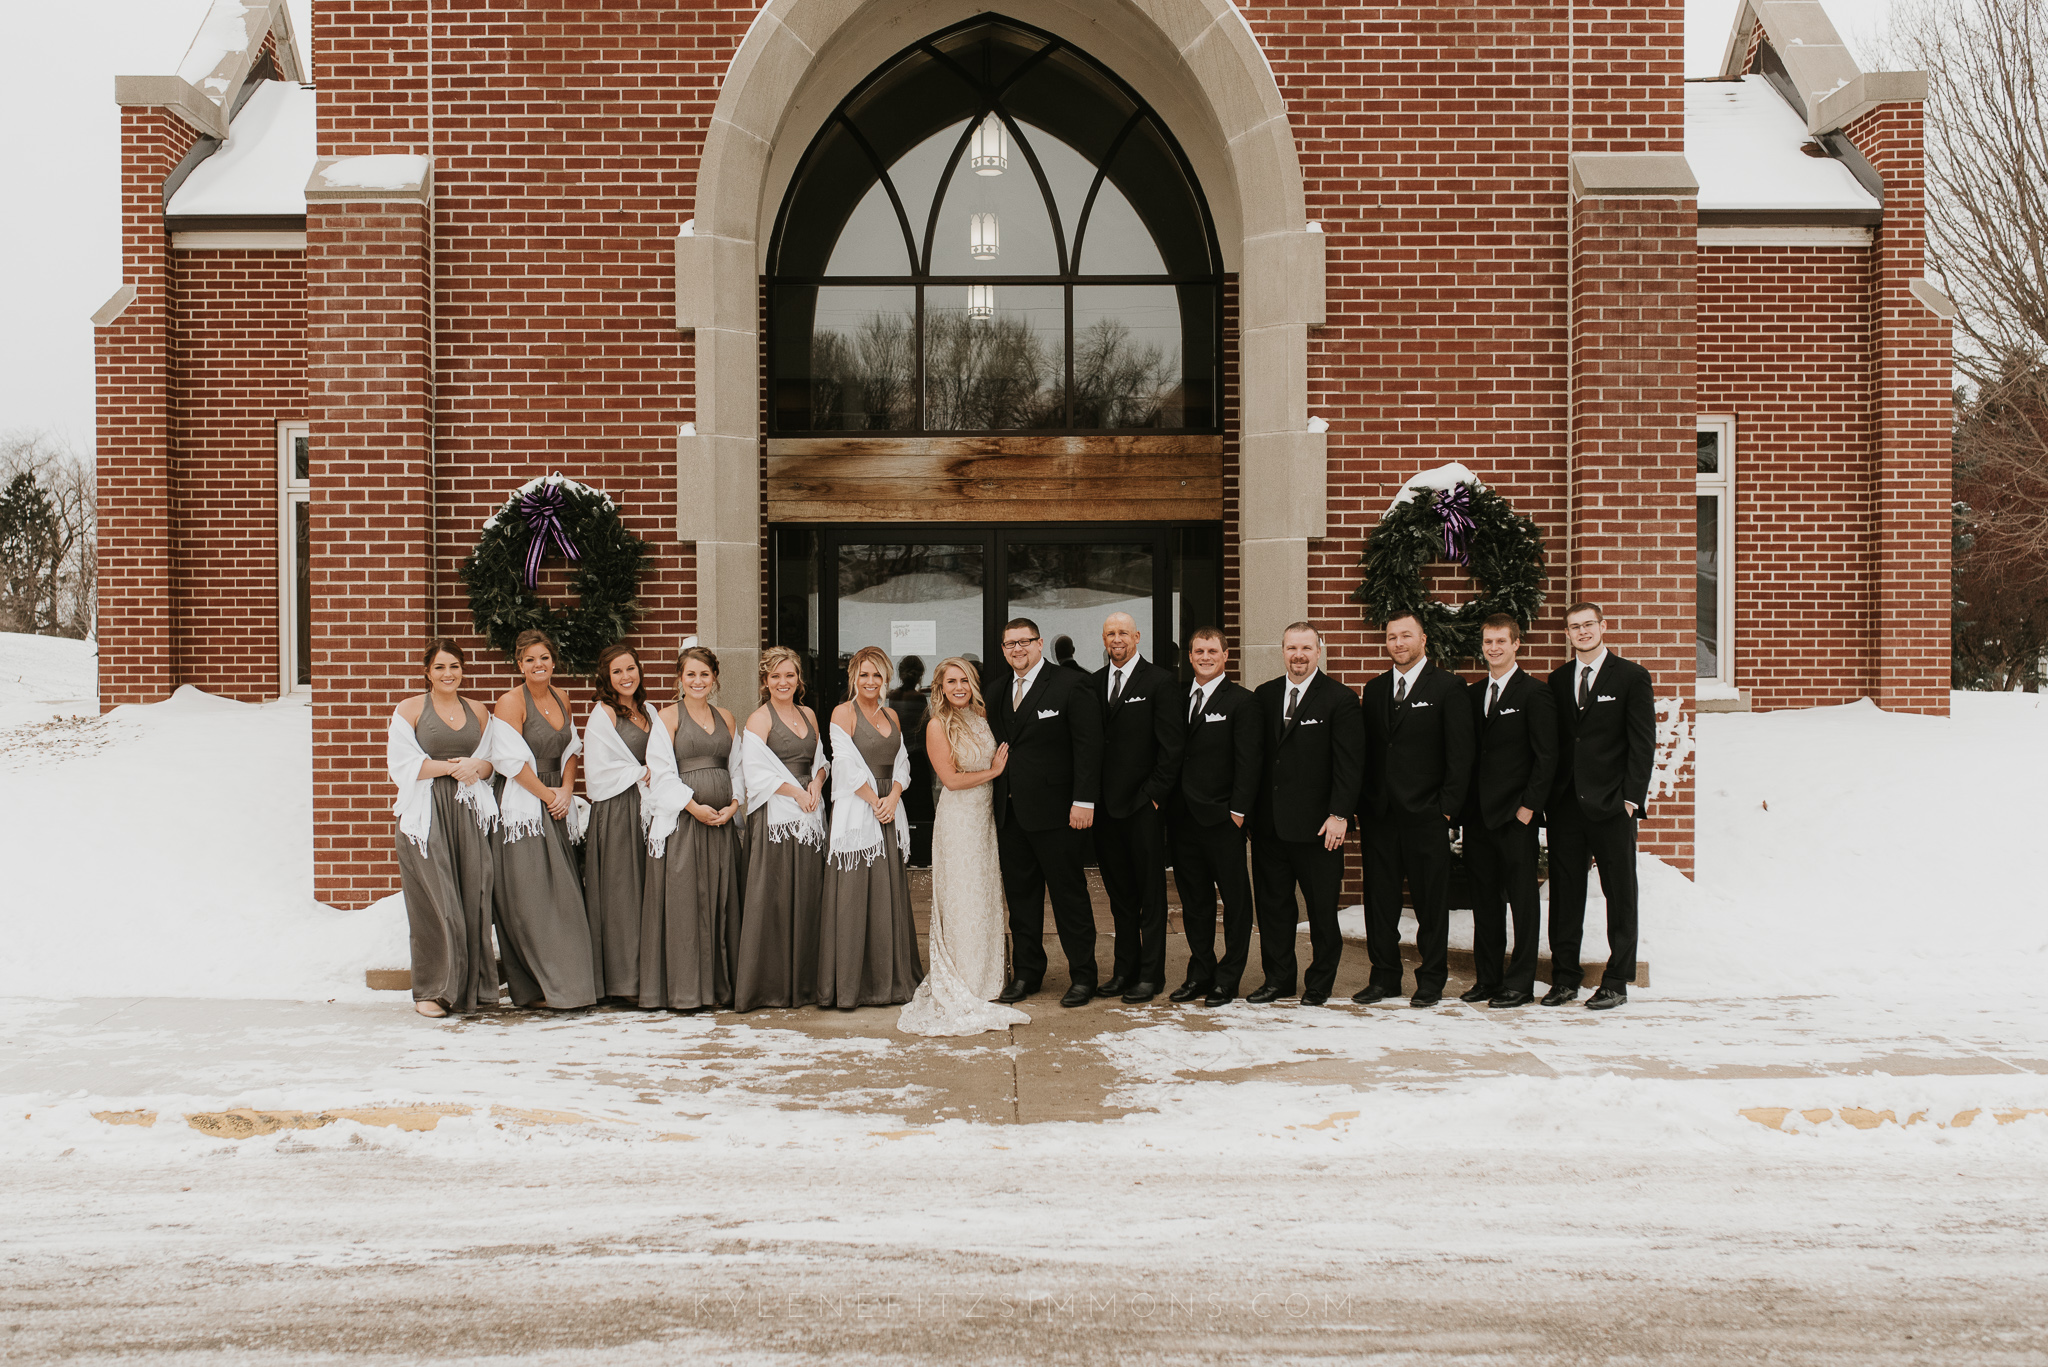 giannonatti-minnesota-winter-wedding-52.jpg